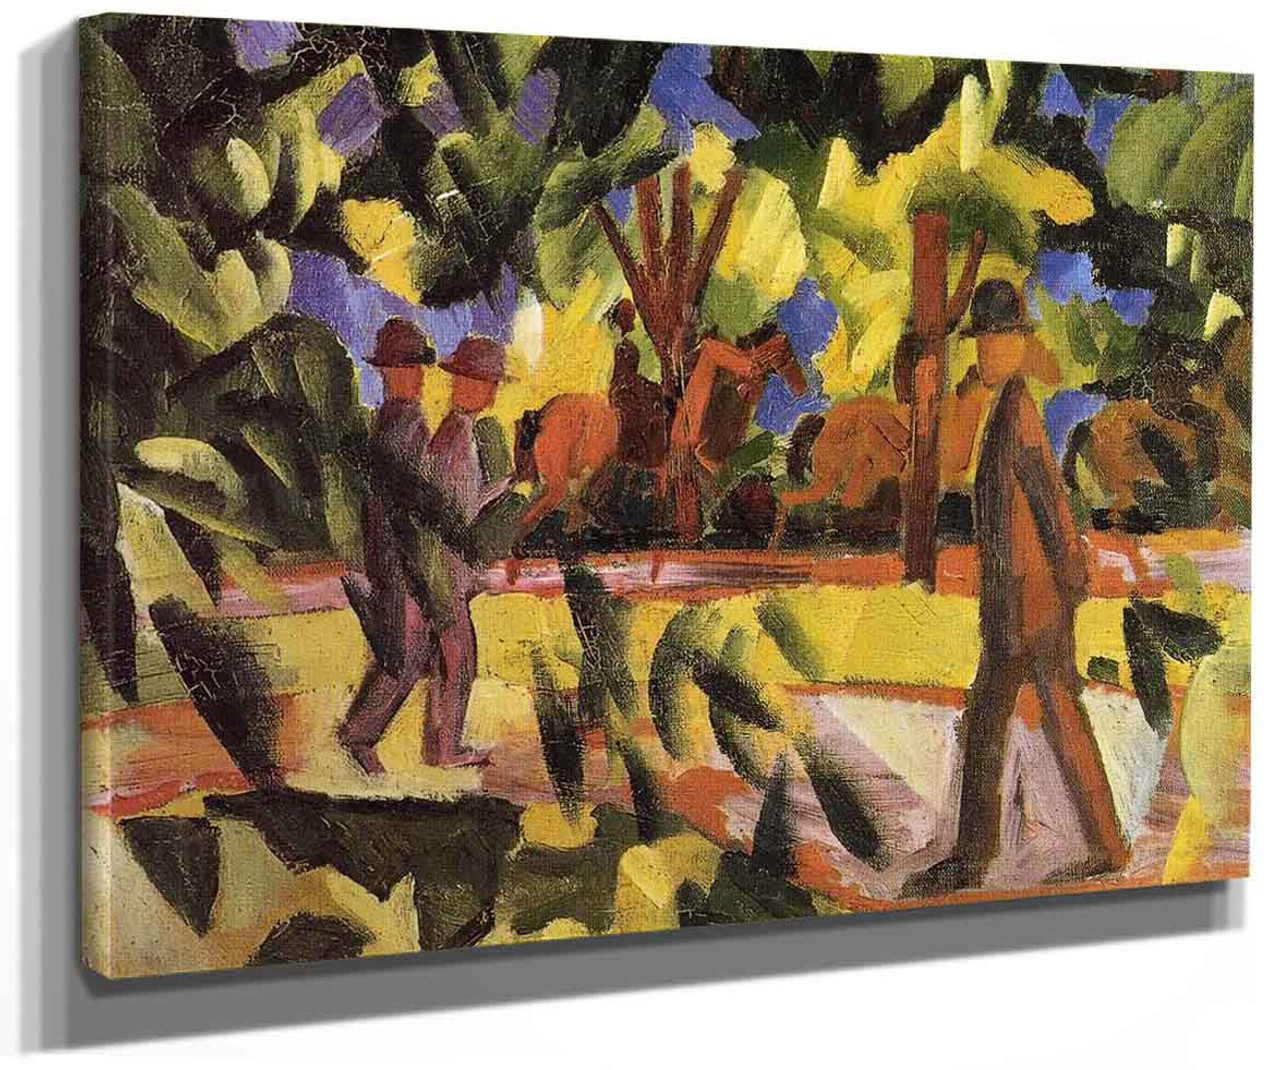 Man with a donkey by August Macke Giclee Fine ArtPrint Reproduction on Canvas